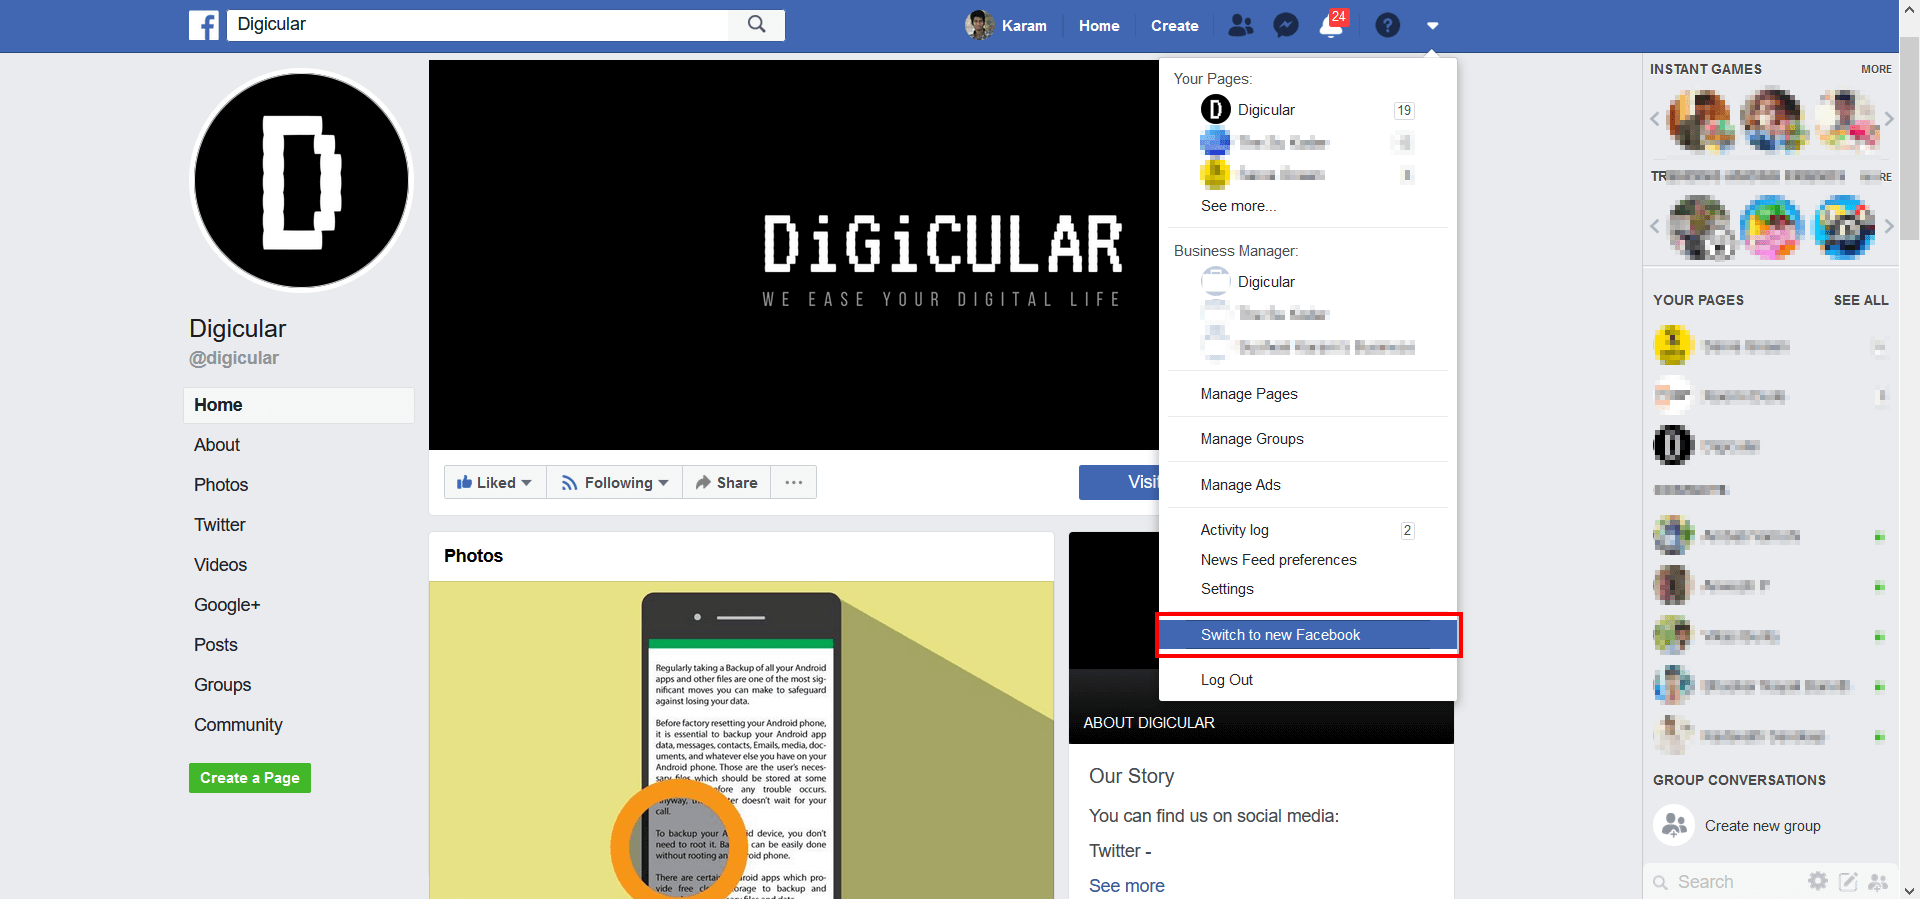 switch_to_new_facebook_desktop_interface_digicular